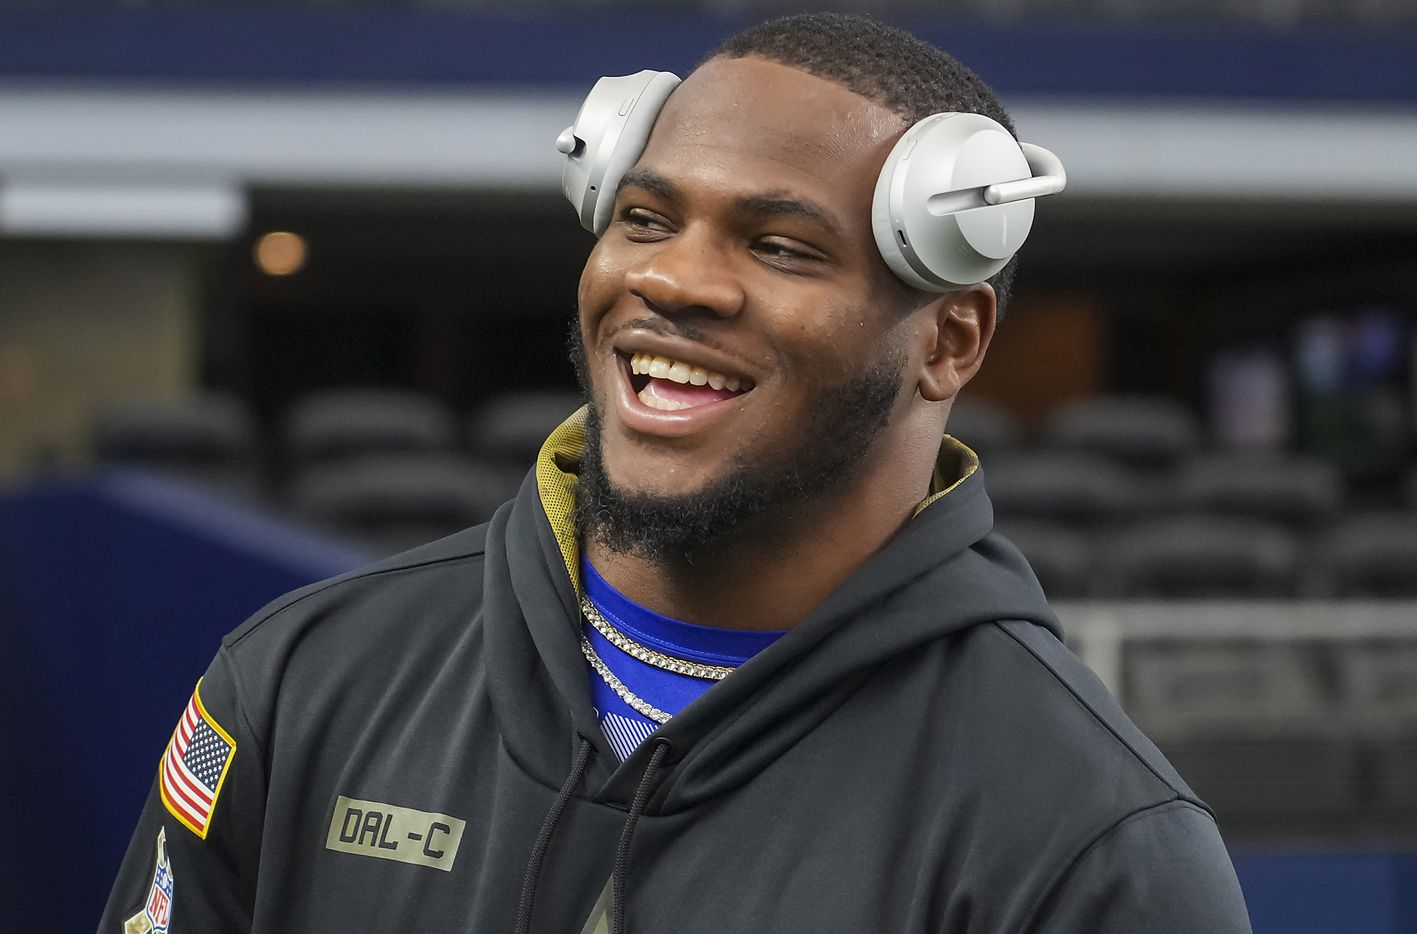 Dallas Cowboys linebacker Micah Parsons laughs with Shannon Furman of HBO's Hard Knocks as players warm up before a preseason NFL football game against the Jacksonville Jaguars at AT&T Stadium on Sunday, Aug. 29, 2021, in Arlington. (Smiley N. Pool/The Dallas Morning News)